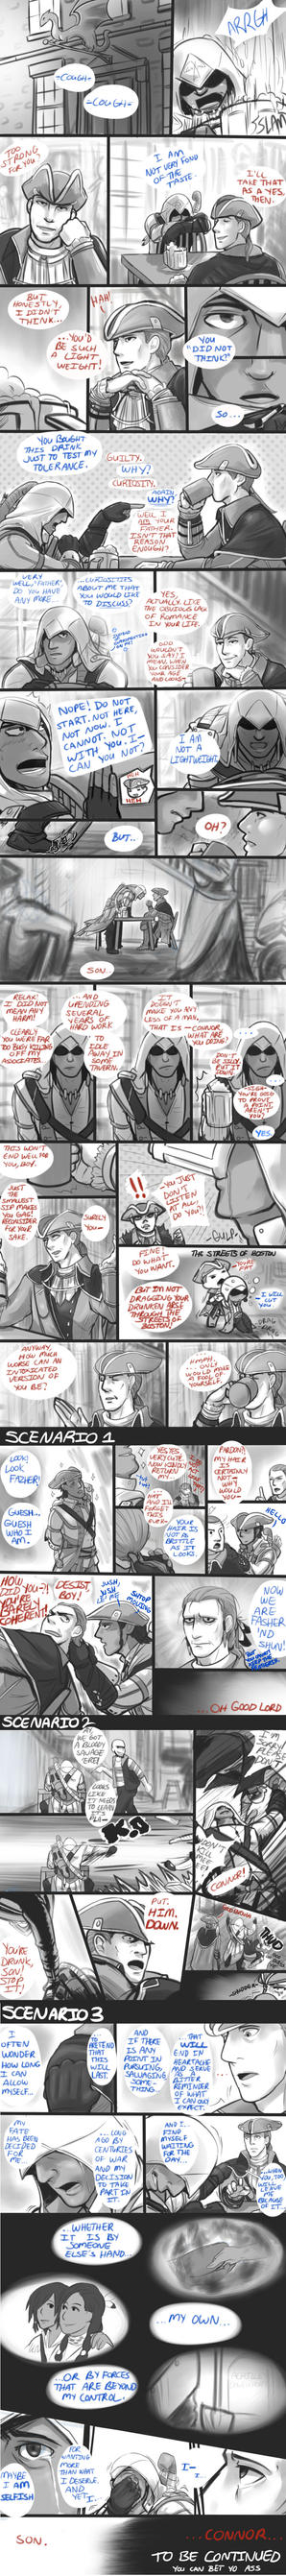 (AC3) Too Much, Too Little by blacktenshi22